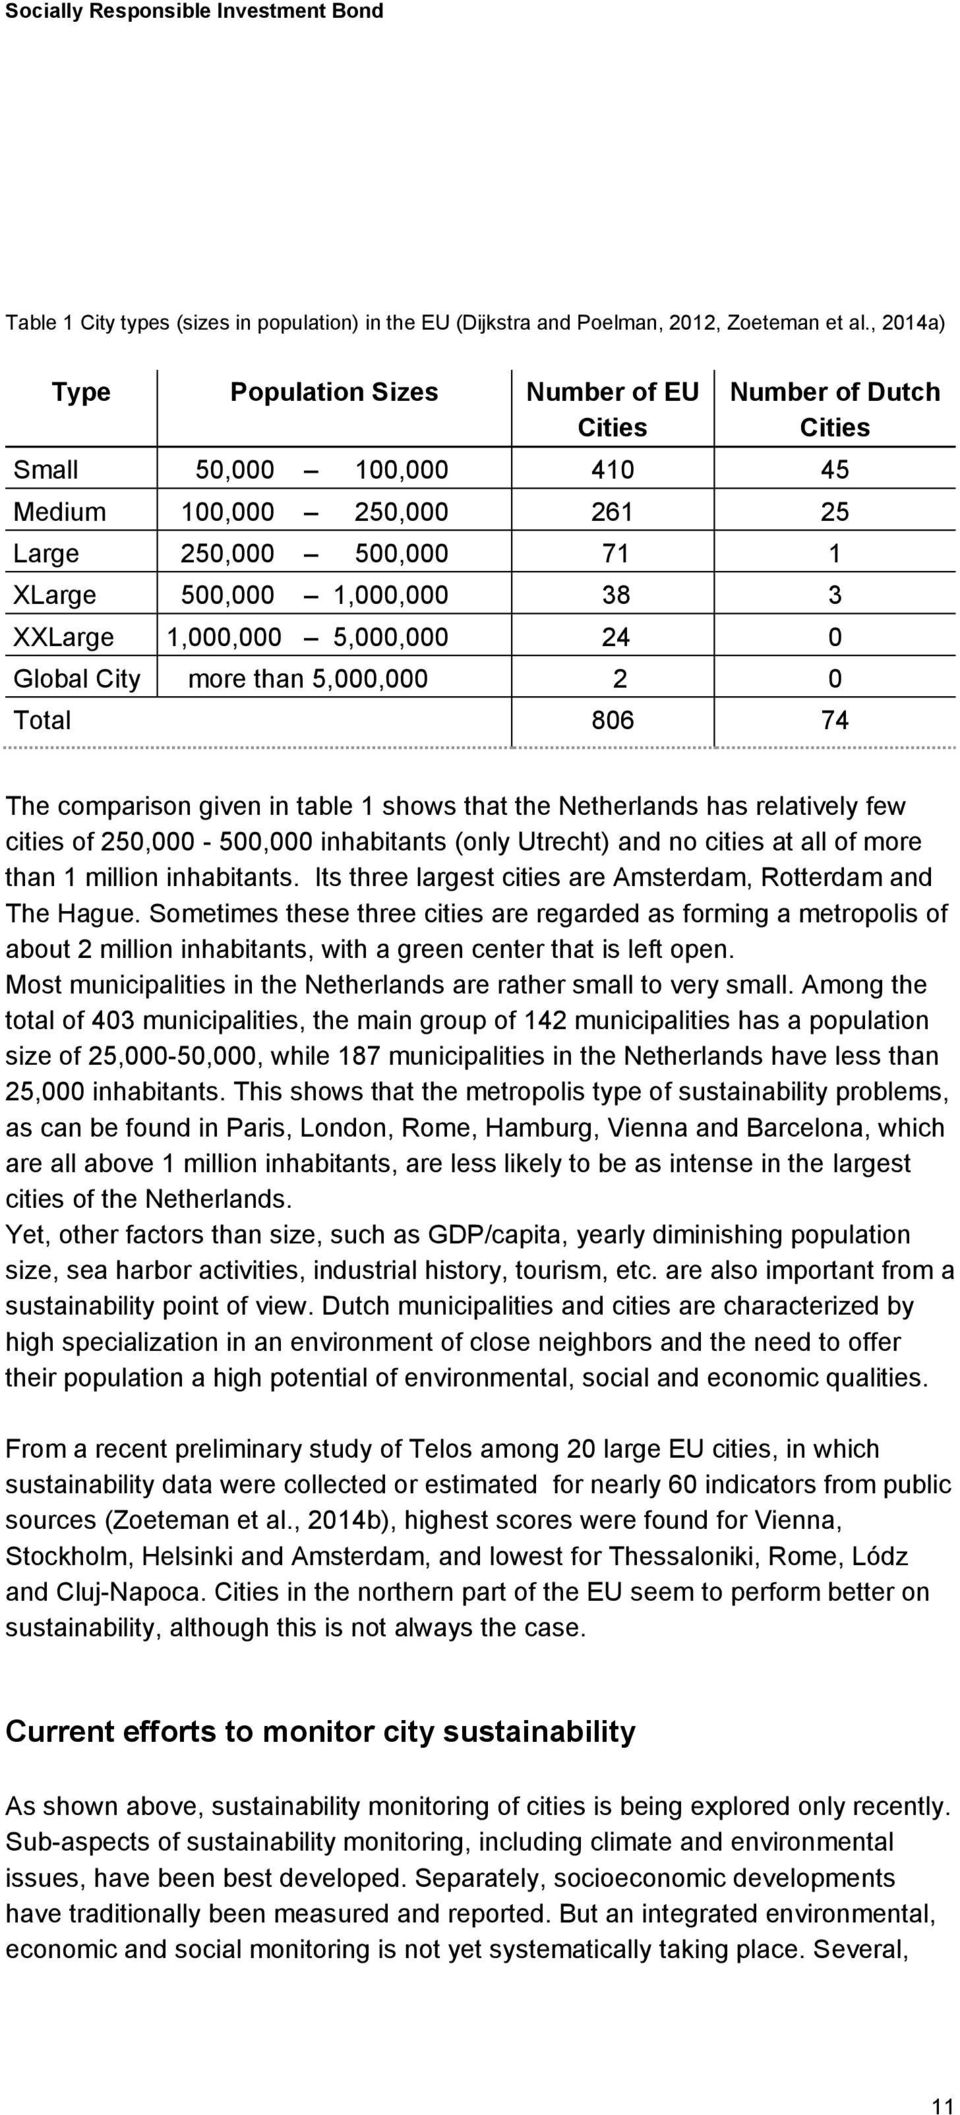 1,000,000 5,000,000 24 0 Global City more than 5,000,000 2 0 Total 806 74 The comparison given in table 1 shows that the Netherlands has relatively few cities of 250,000-500,000 inhabitants (only